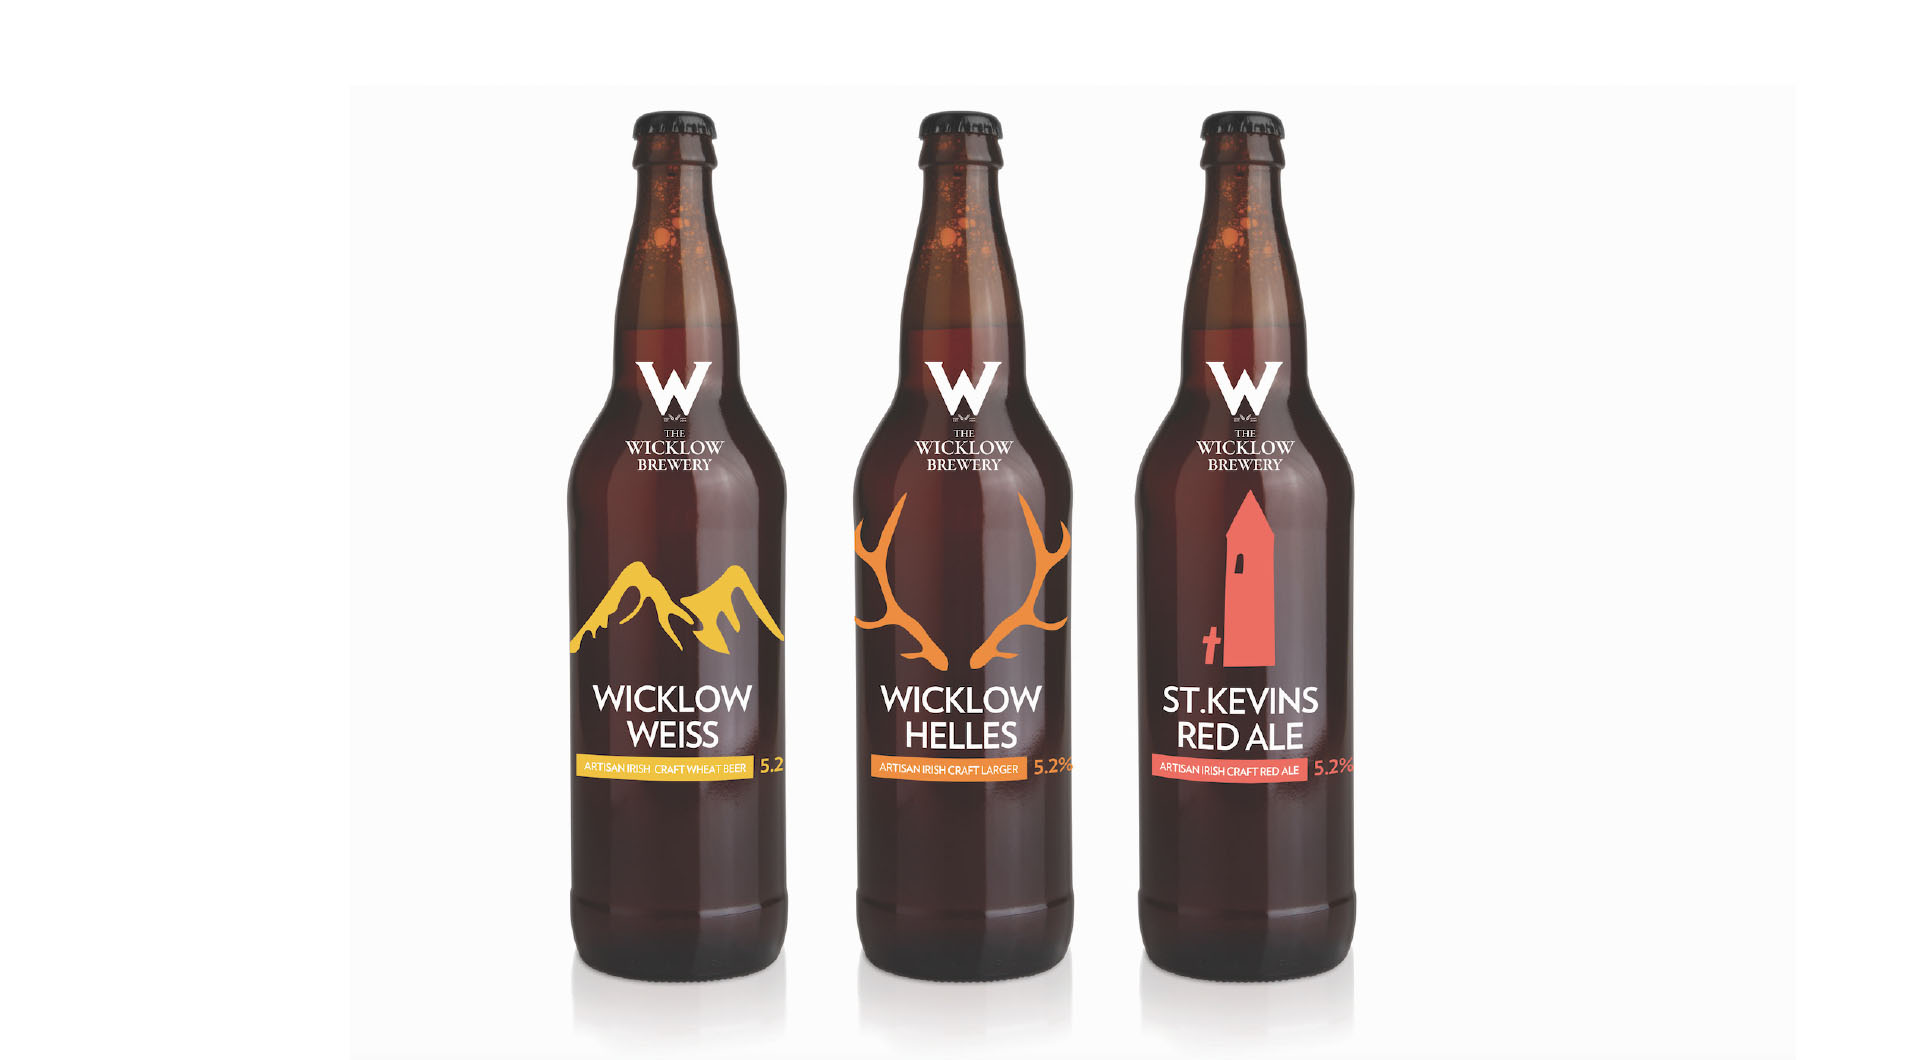 Wicklow Brewery Beer bottle design, beer packaging design, bottle designs.